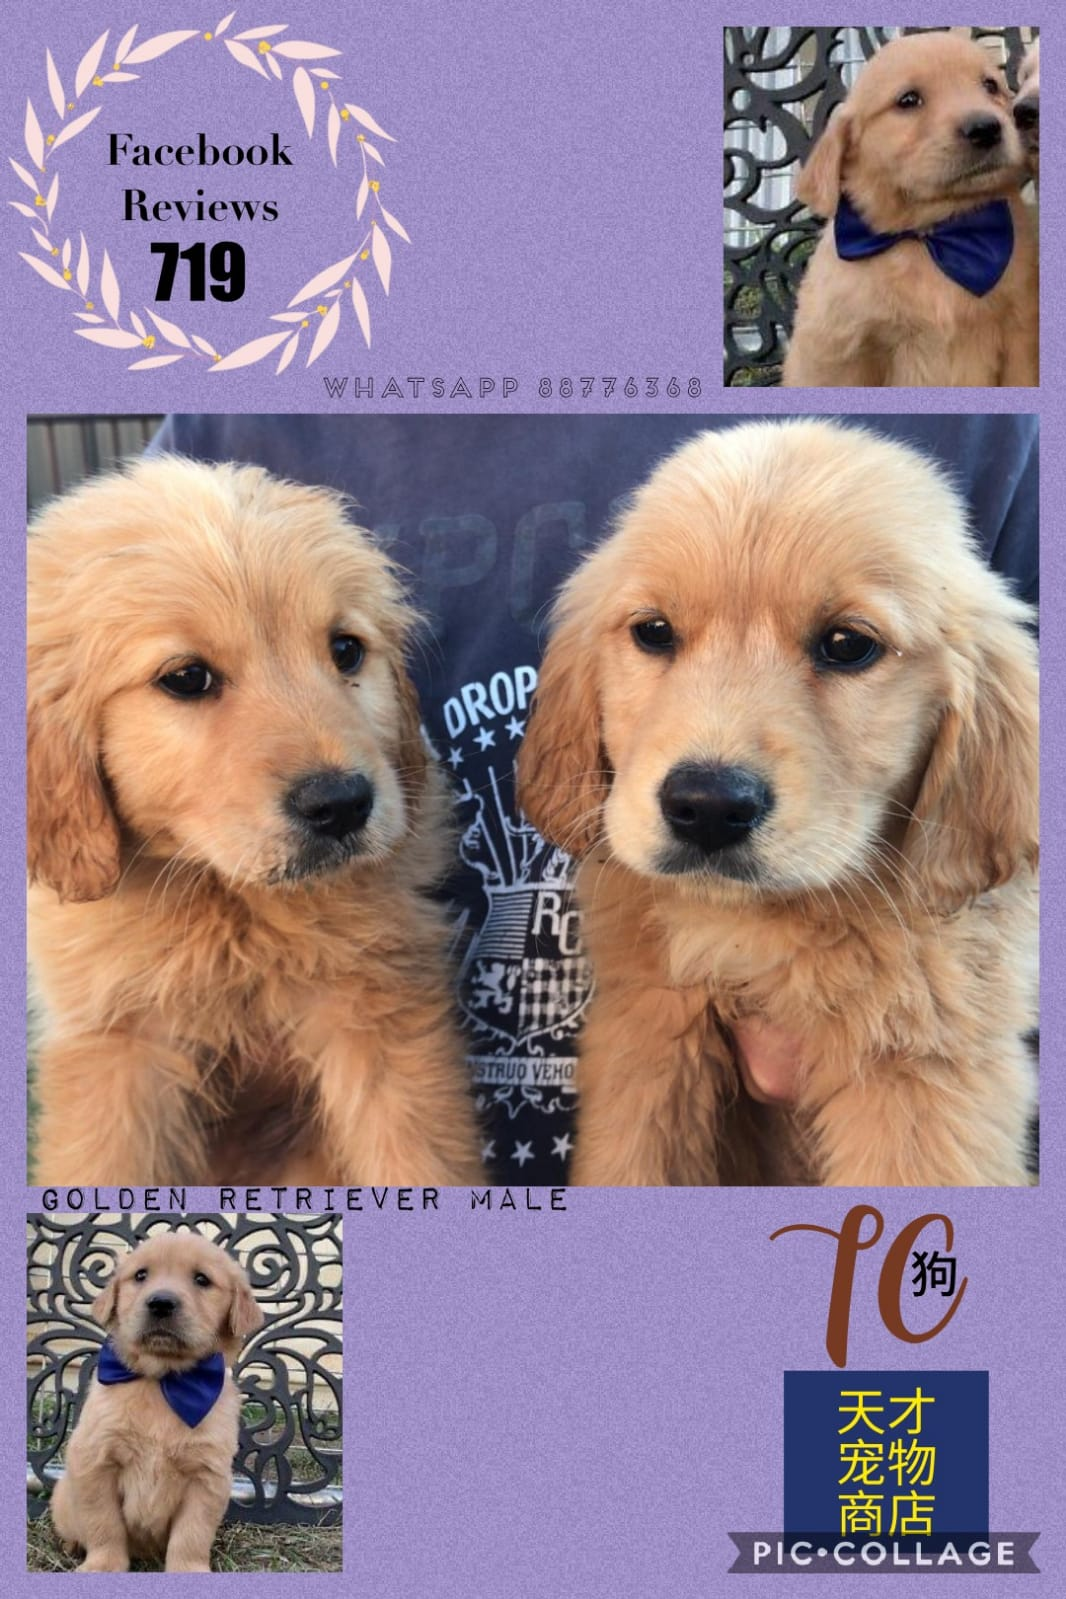 Imported Golden Retriever Puppies For Sale Singapore